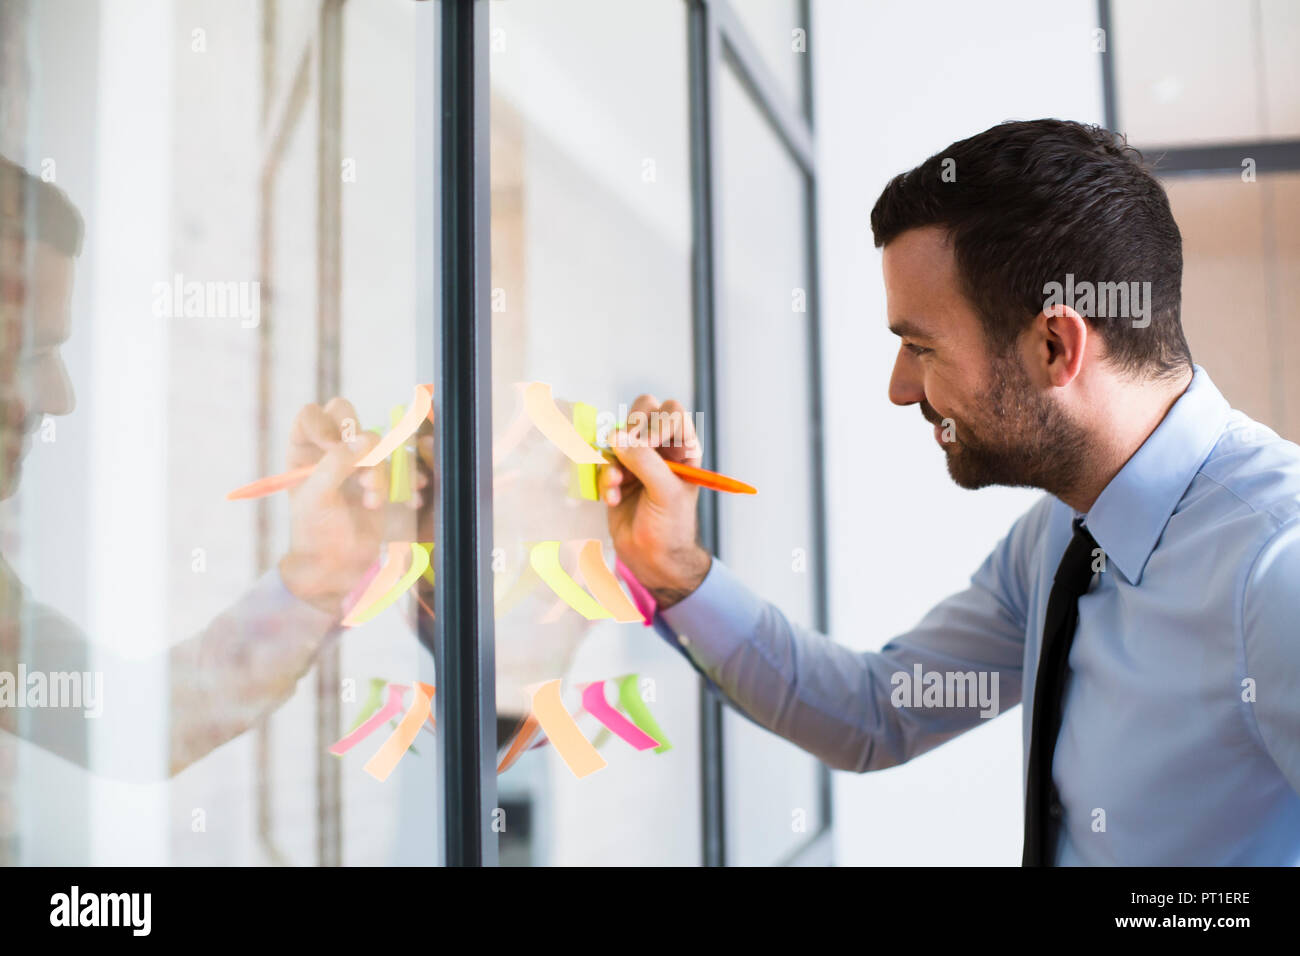 Businessman in office writing on adhesive note on glass wall - Stock Image